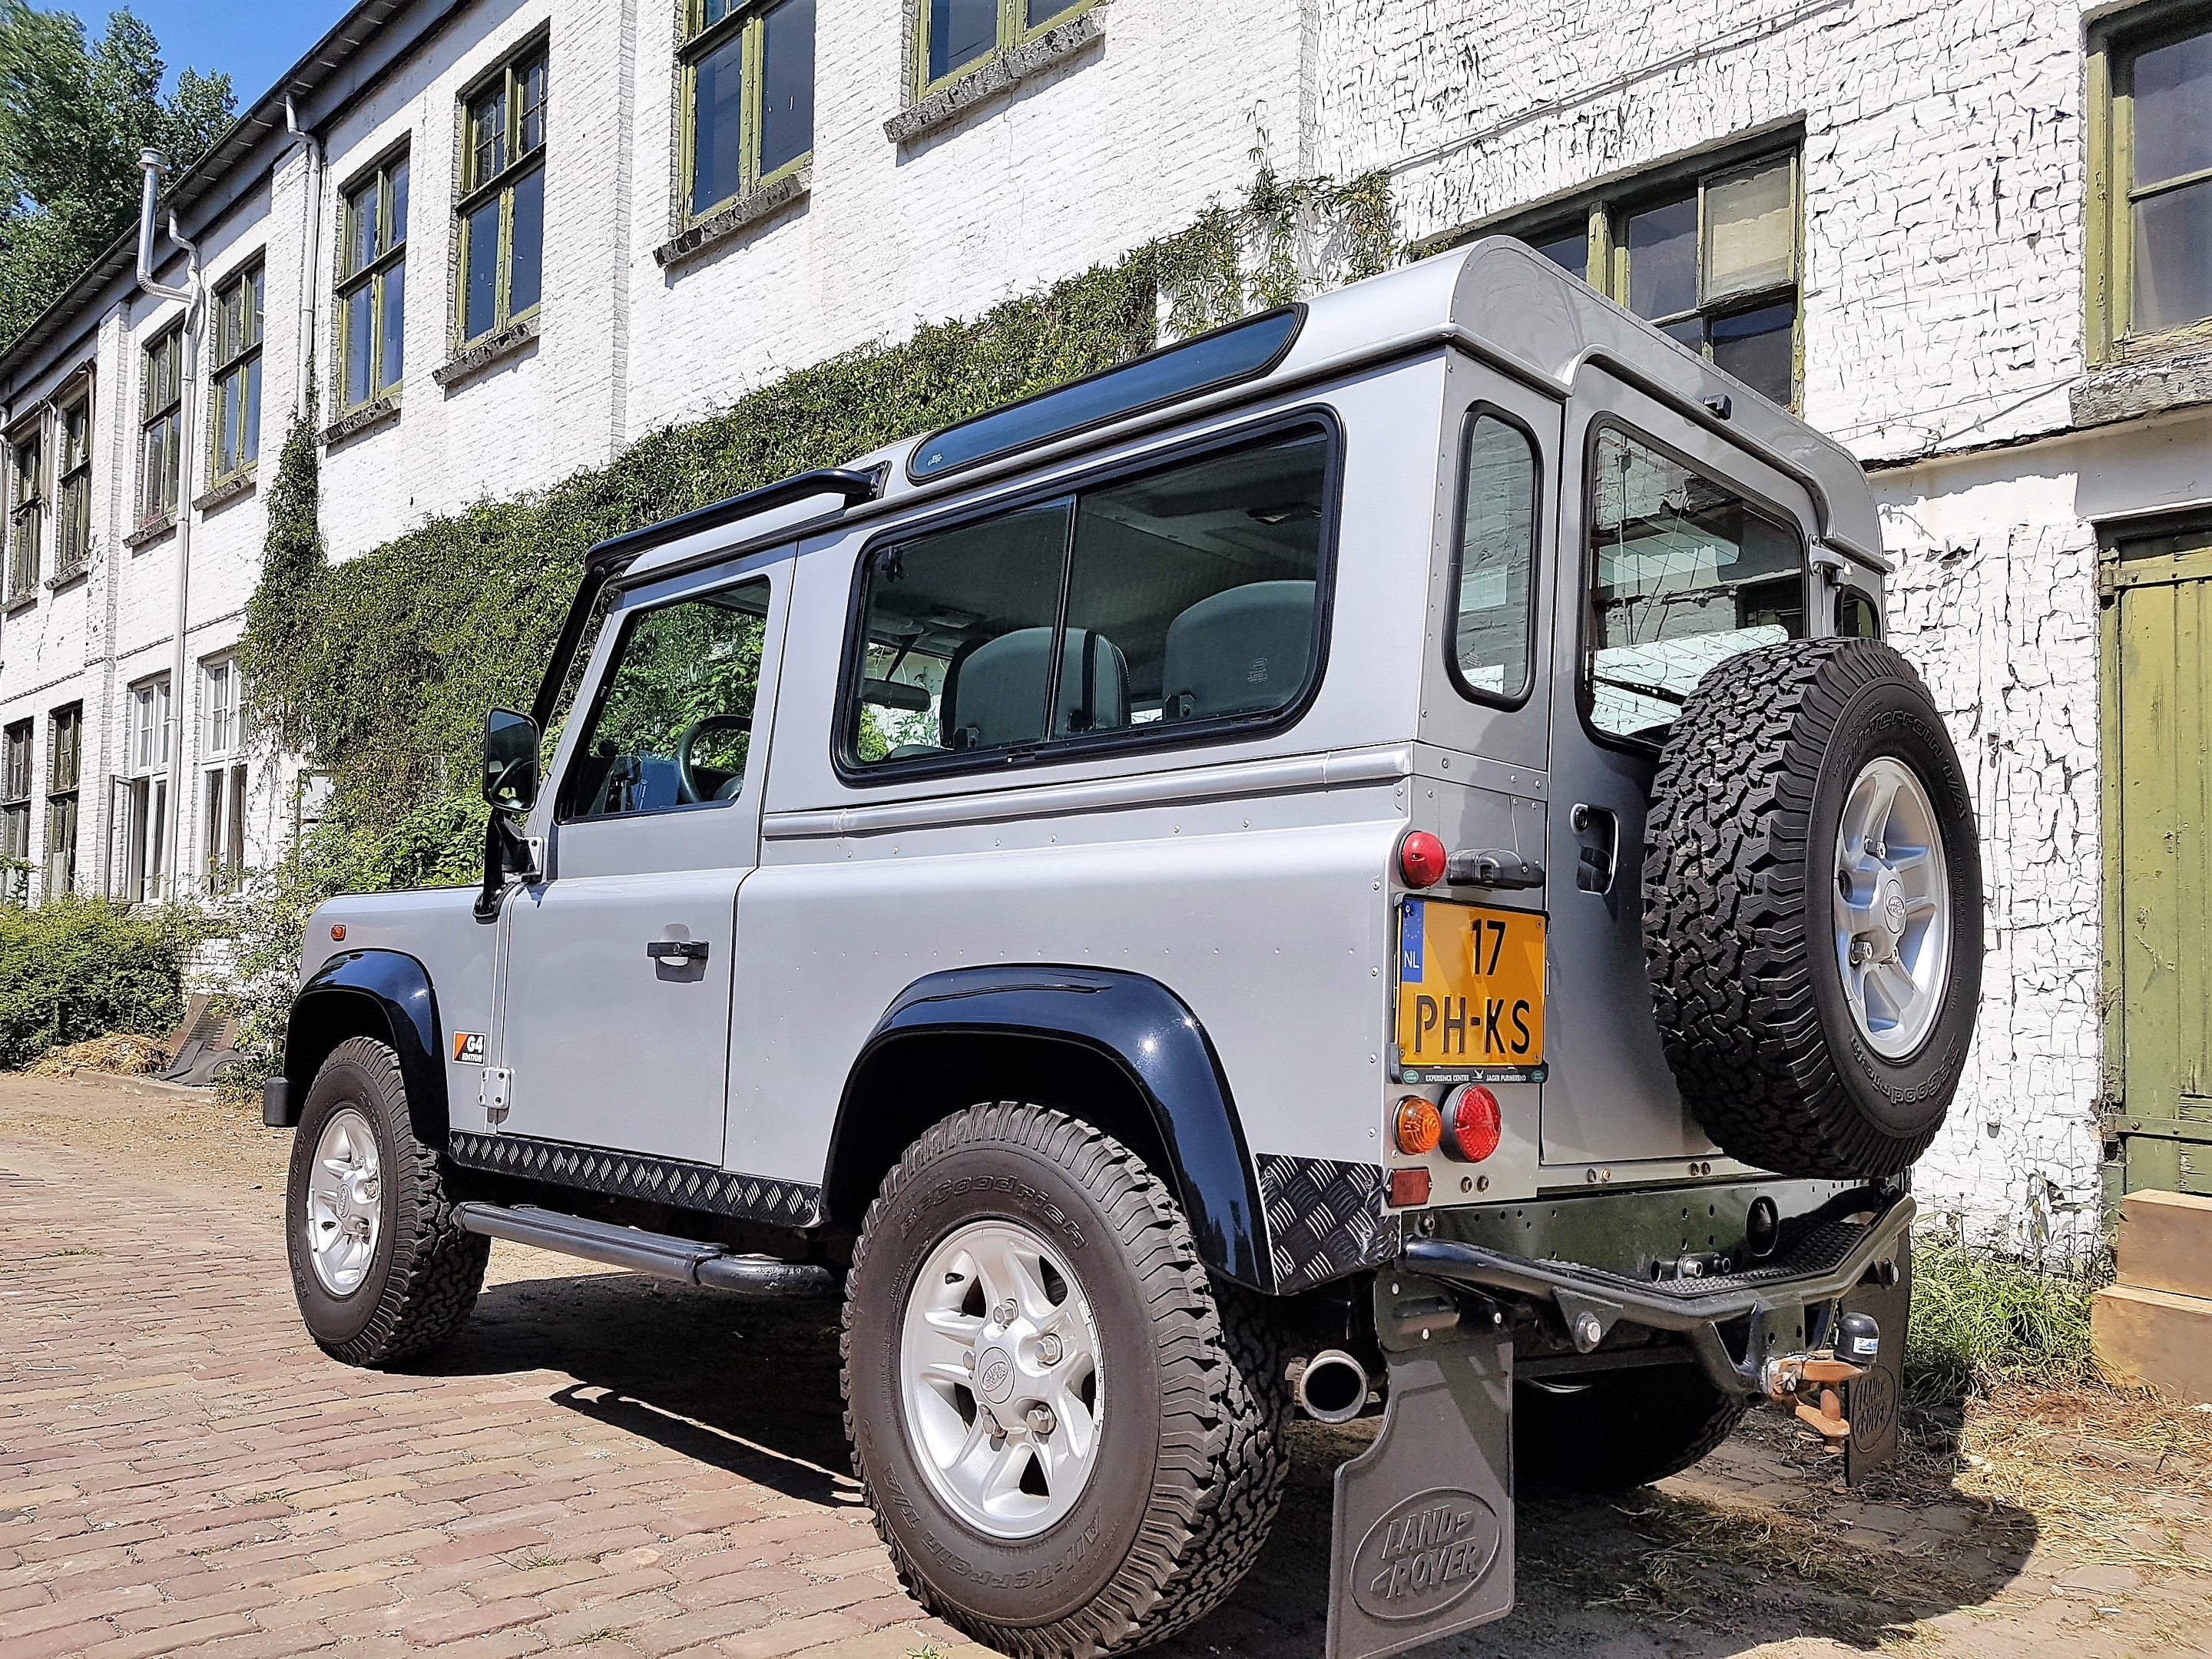 2005 Land Rover Defender 90 G4 – Olivers Classics